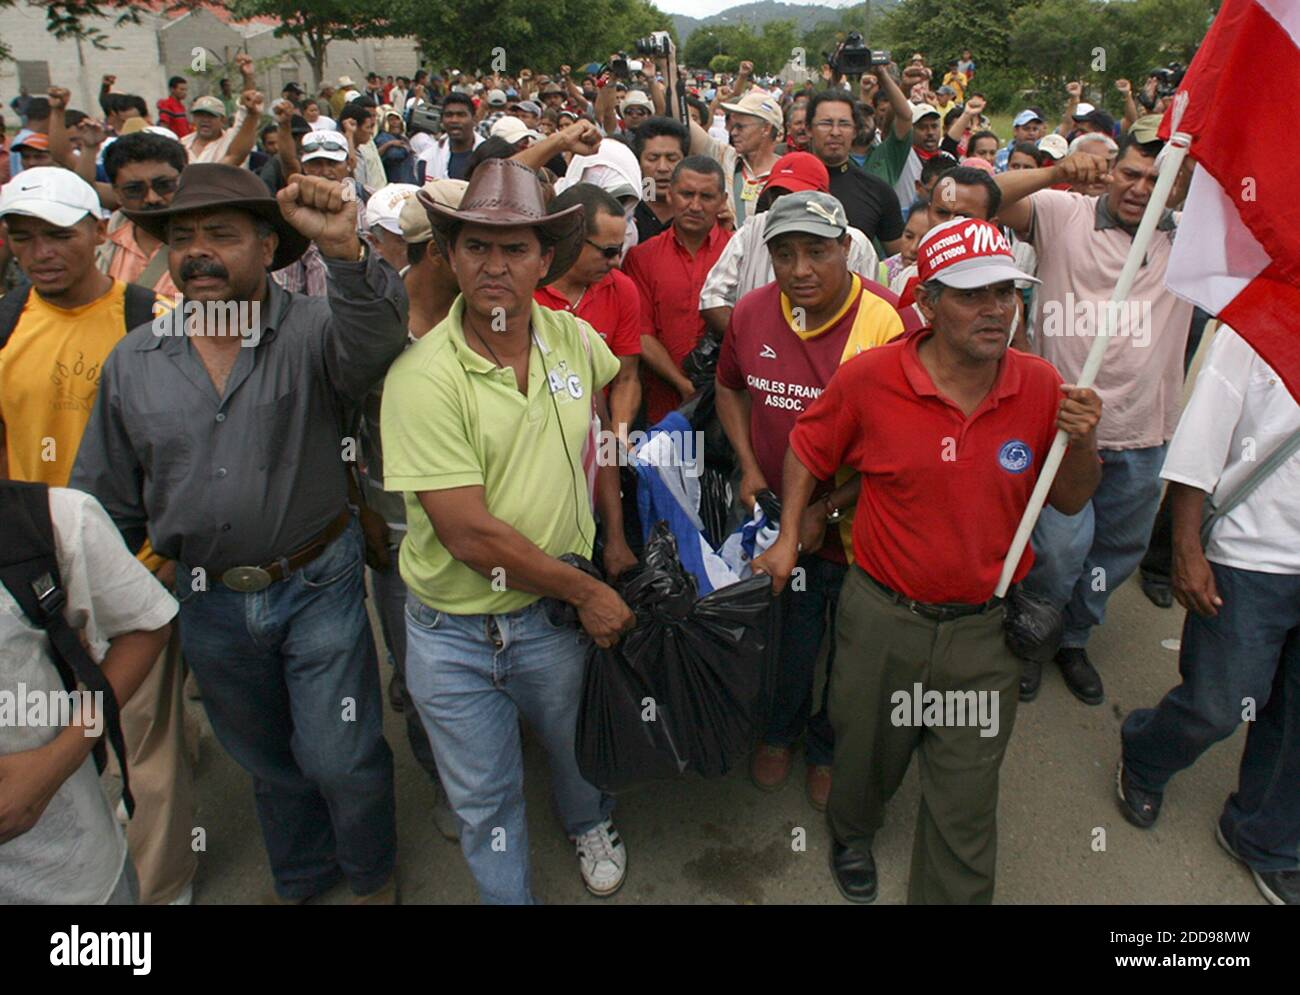 NO FILM, NO VIDEO, NO TV, NO DOCUMENTARY - A group of Honduran supporters of ousted president Manuel Zelaya, carry the body of Pedro Magdiel Munoz Salvador, a 23-year-old male found stabbed to death outside Paraiso, Honduras, Satuday, July 25, 2009. Zelaya's supporters accused the Honduran Army of Salvador's death. Photo by Pedro Portal/EL Nuevo Herald/Miami Herald/MCT/ABACAPRESS.COM Stock Photo